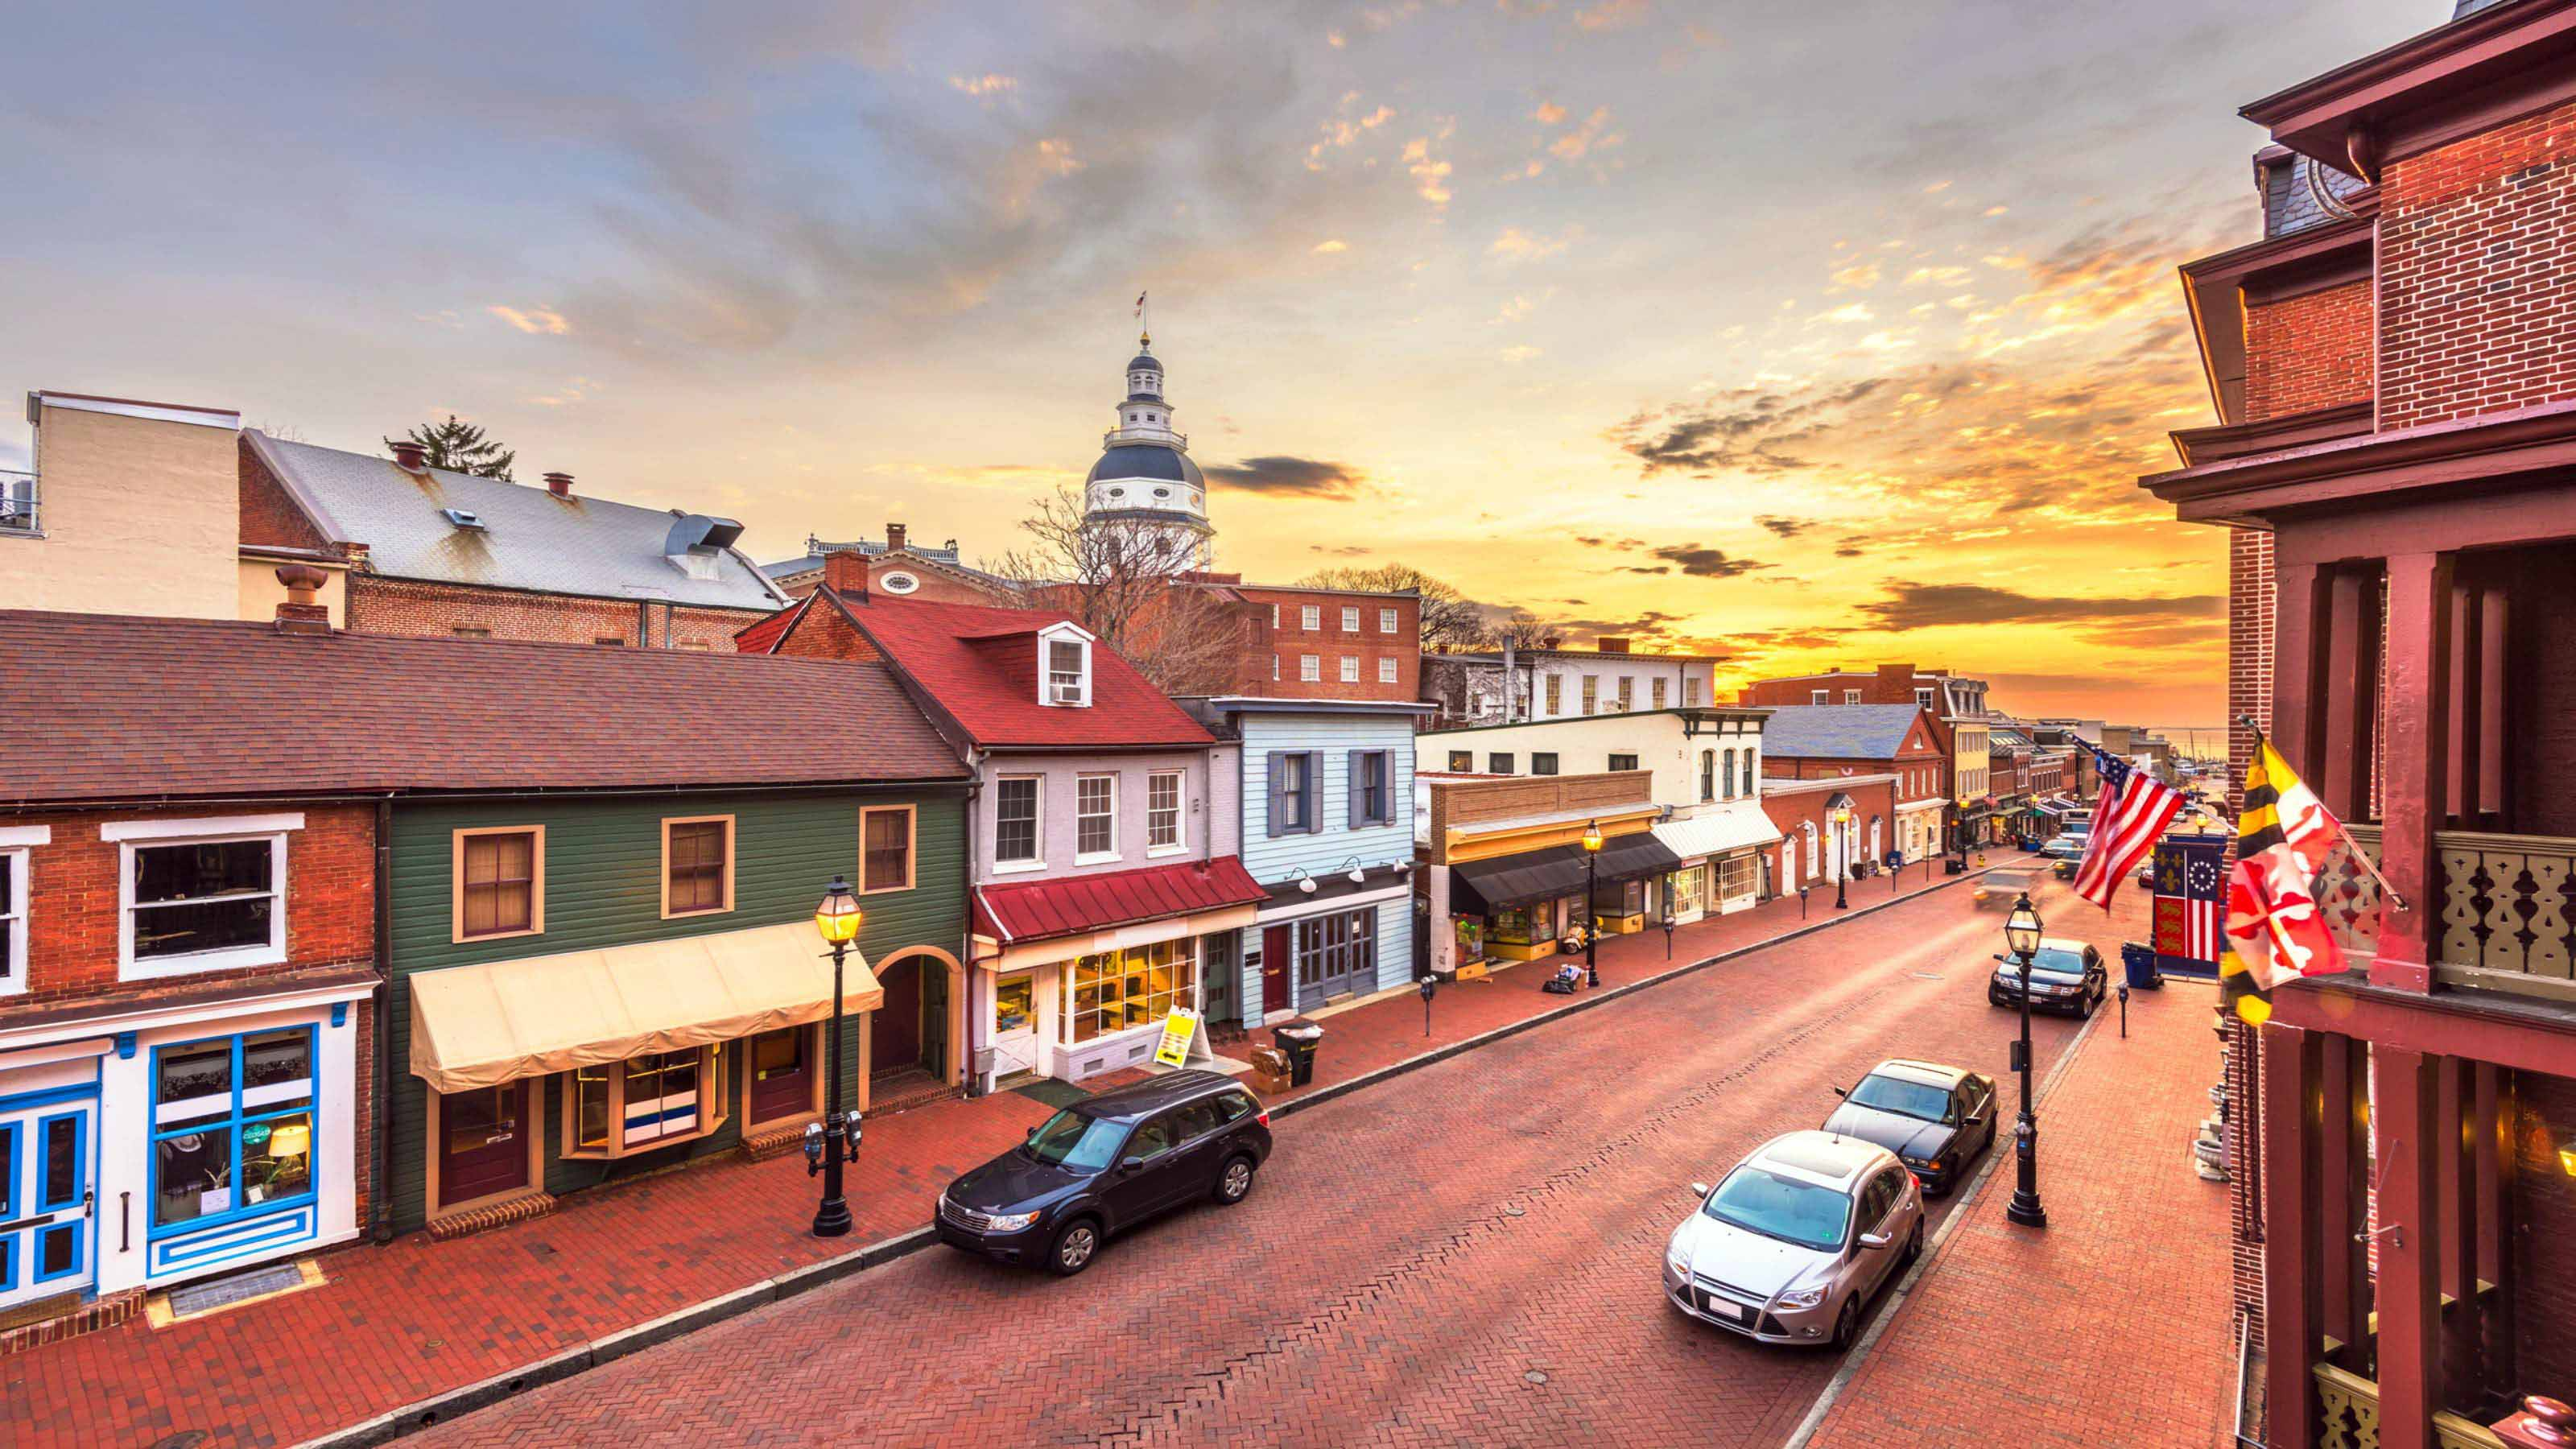 25 Small Towns With Big Millionaire Populations Kiplinger,Barefoot Contessa Pioneer Woman Meatloaf Recipe